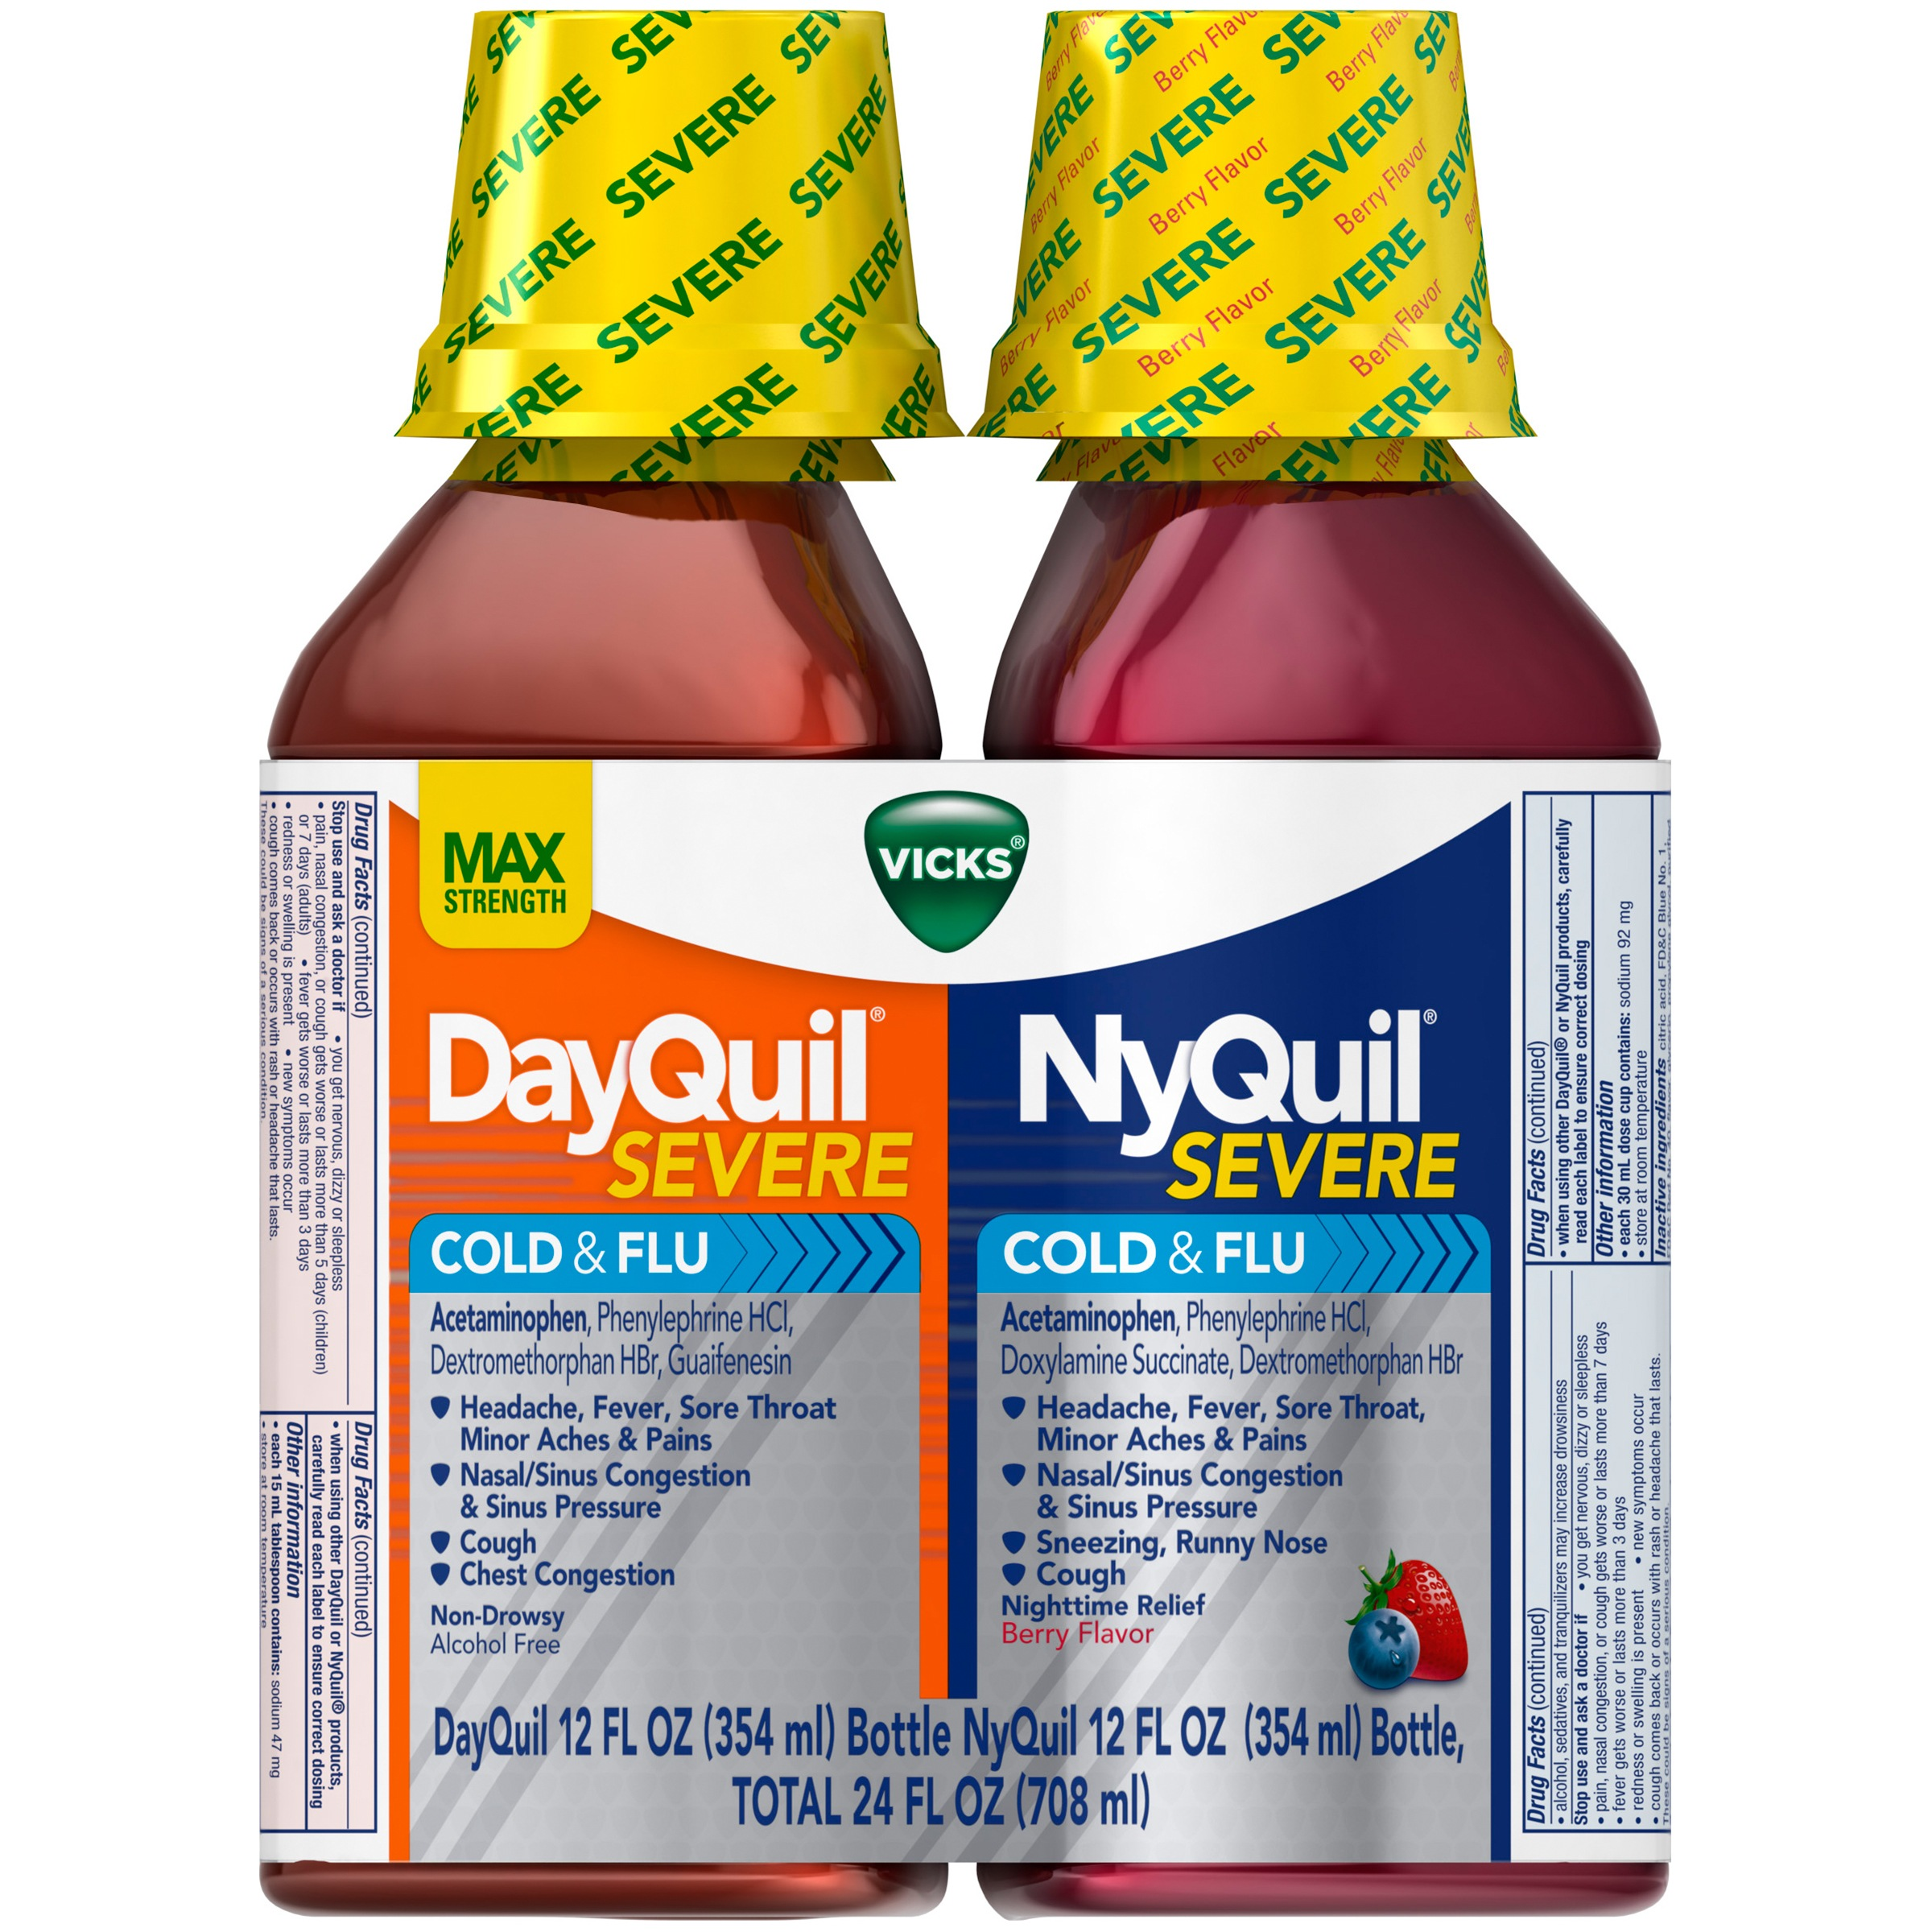 Vicks DayQuil Severe Cold & Flu and NyQuil Severe Cold & Flu Nighttime Relief Liquid, 12 Oz, 2 Pk